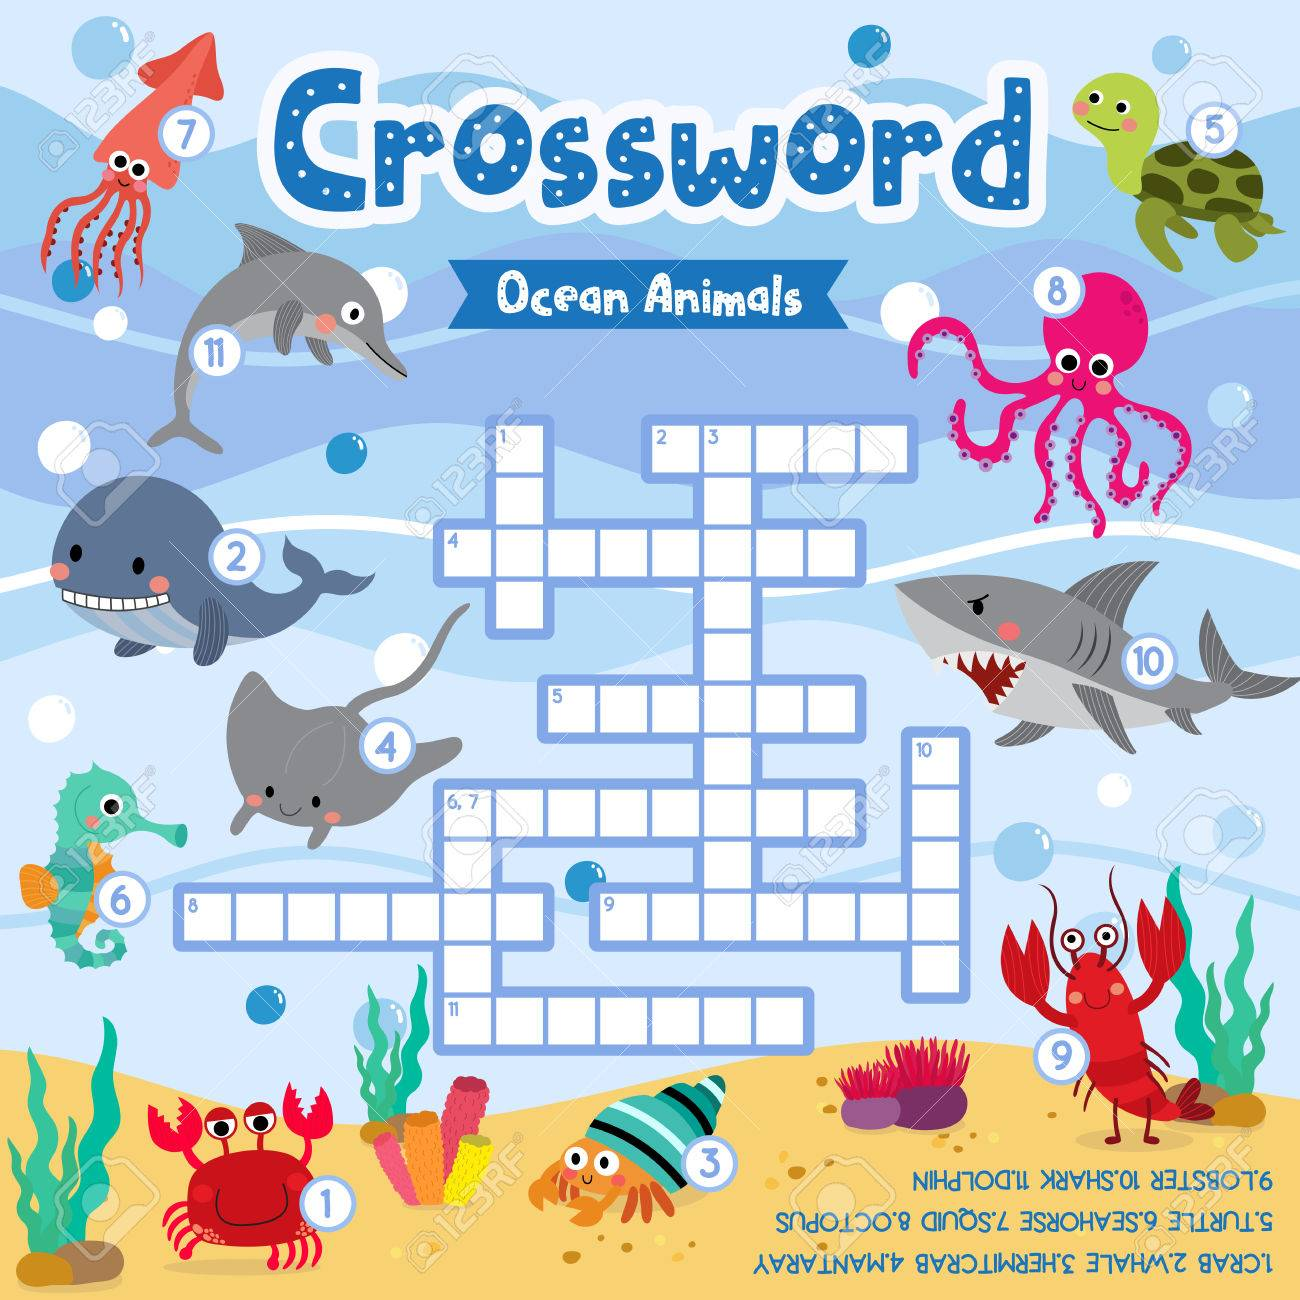 Crosswords Puzzle Game Of Ocean Animals For Preschool Kids Activity Worksheet Colorful Printable Version Vector